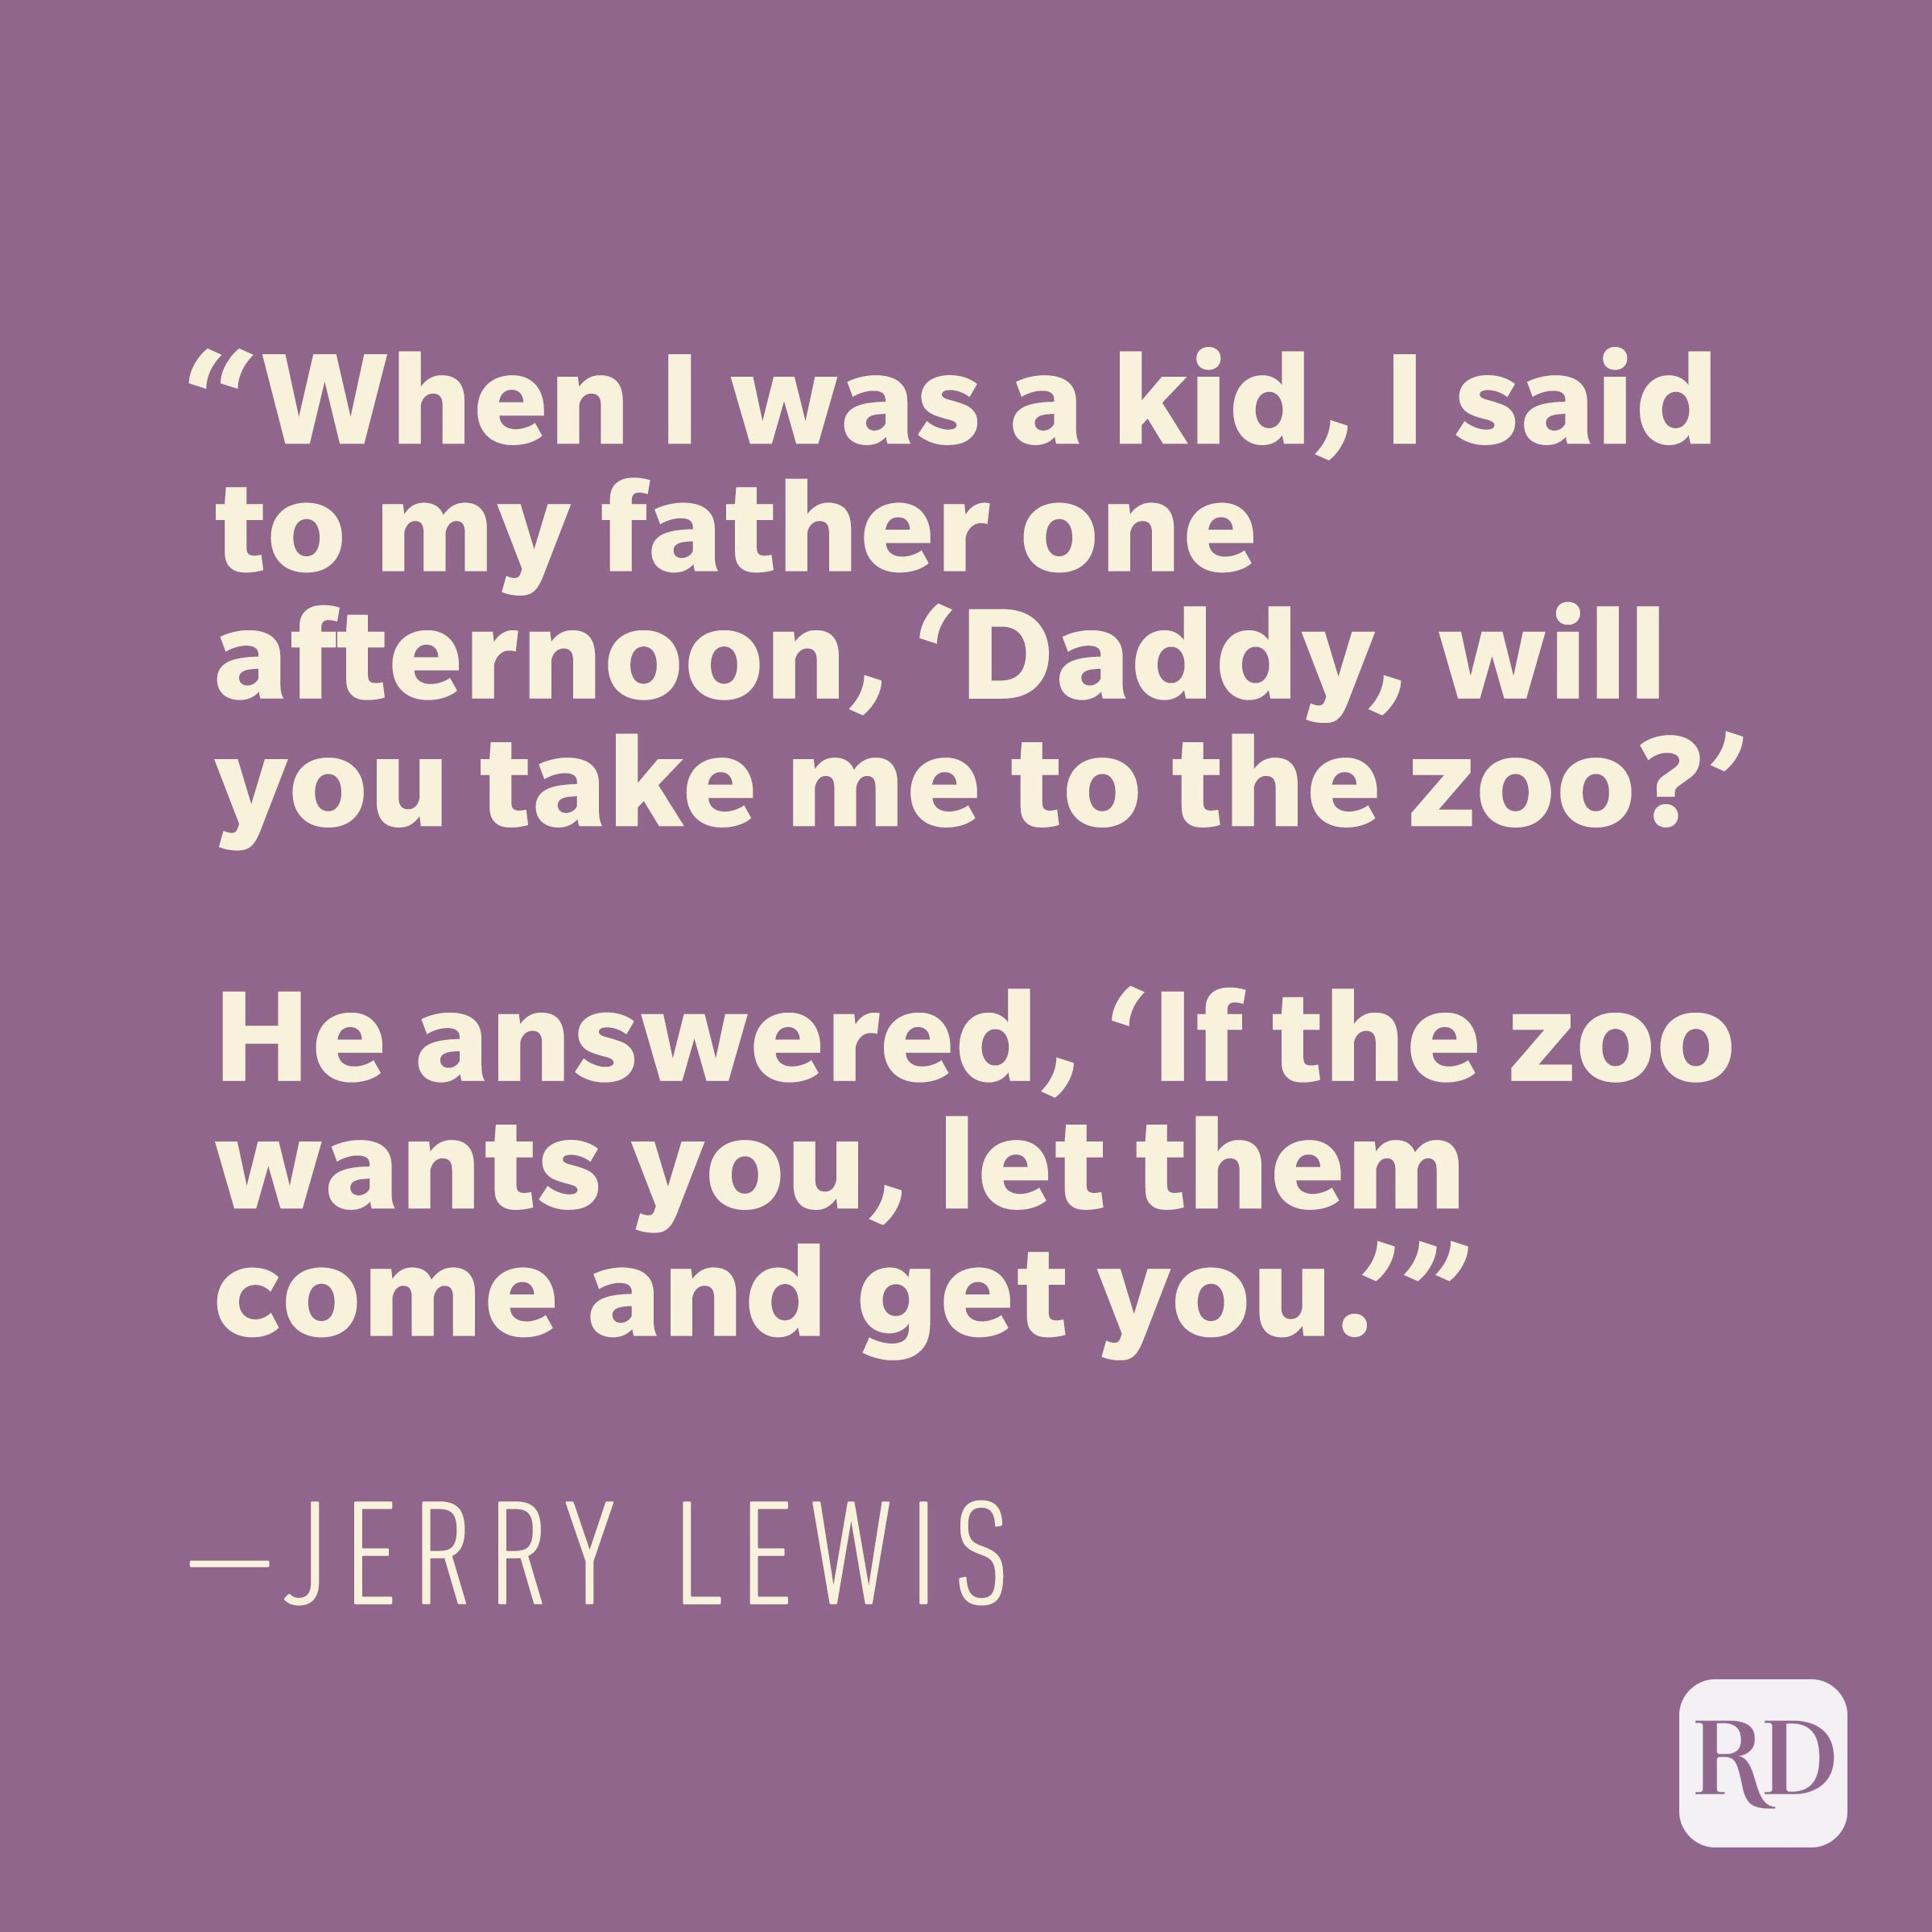 """When I was a kid, I said to my father one afternoon, 'Daddy, will you take me to the zoo?' He answered, 'If the zoo wants you, let them come and get you.'"" —JERRY LEWIS"